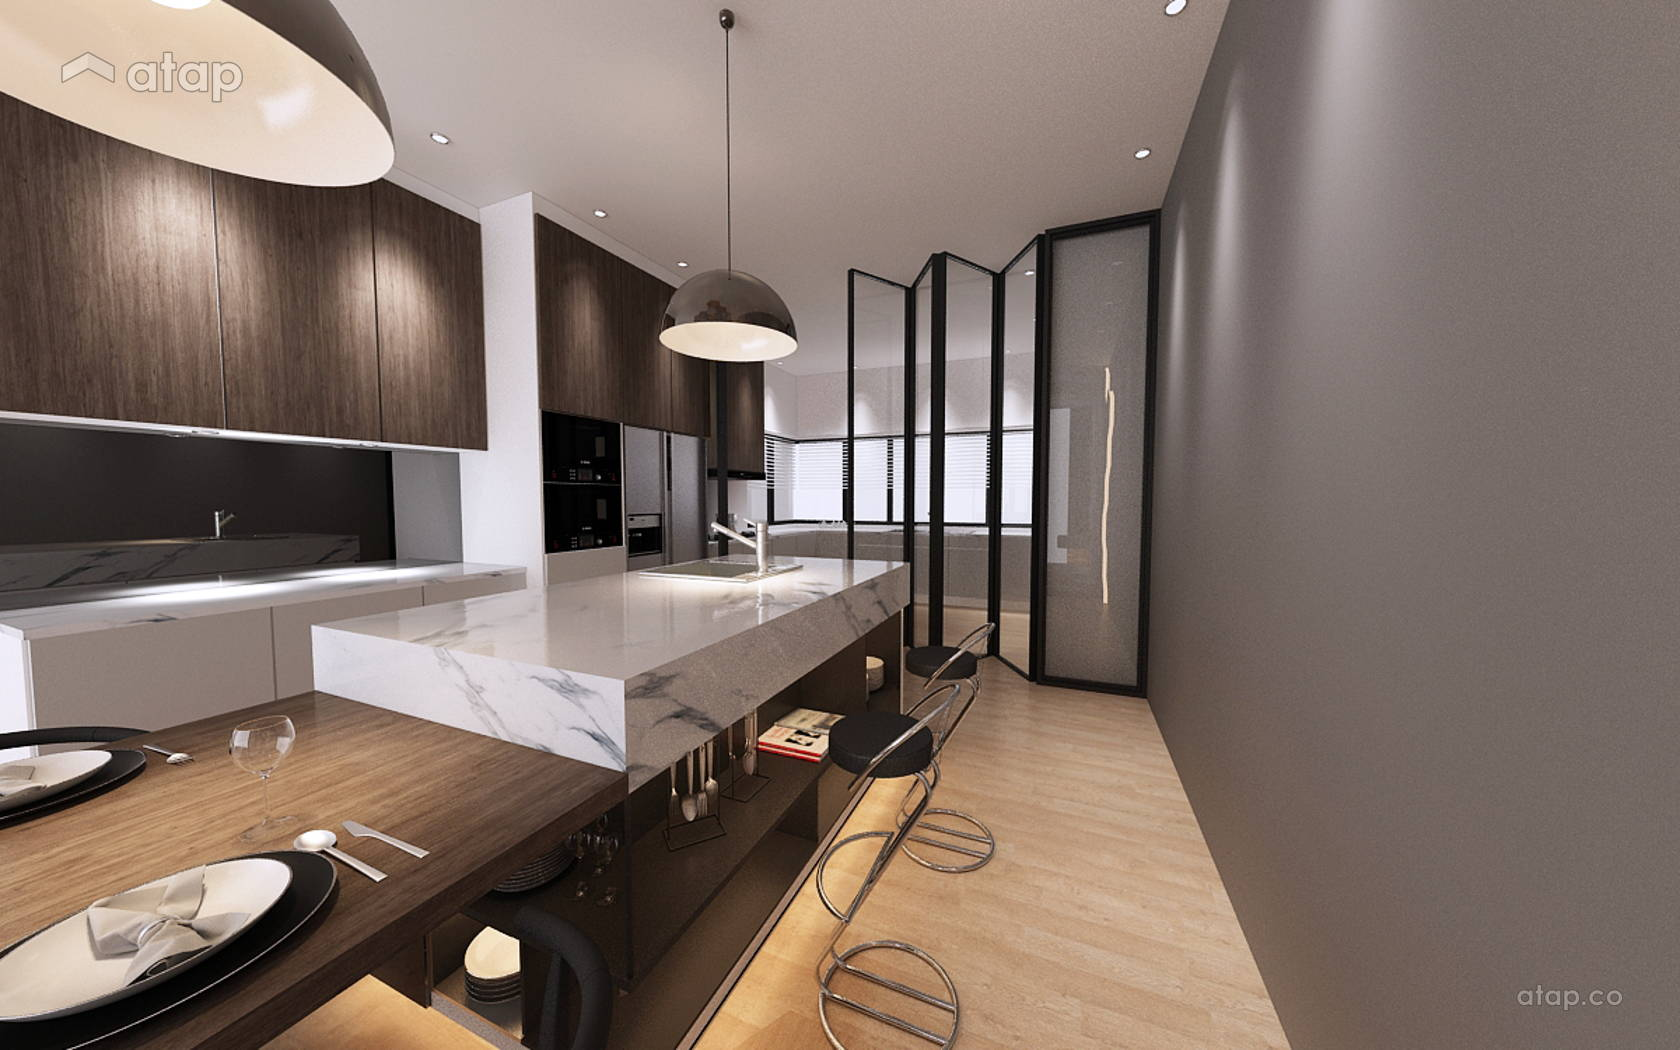 Minimalistic Modern Kitchen Empire Residence 4 Storey Terrace Damansara Perdana Share This Professional